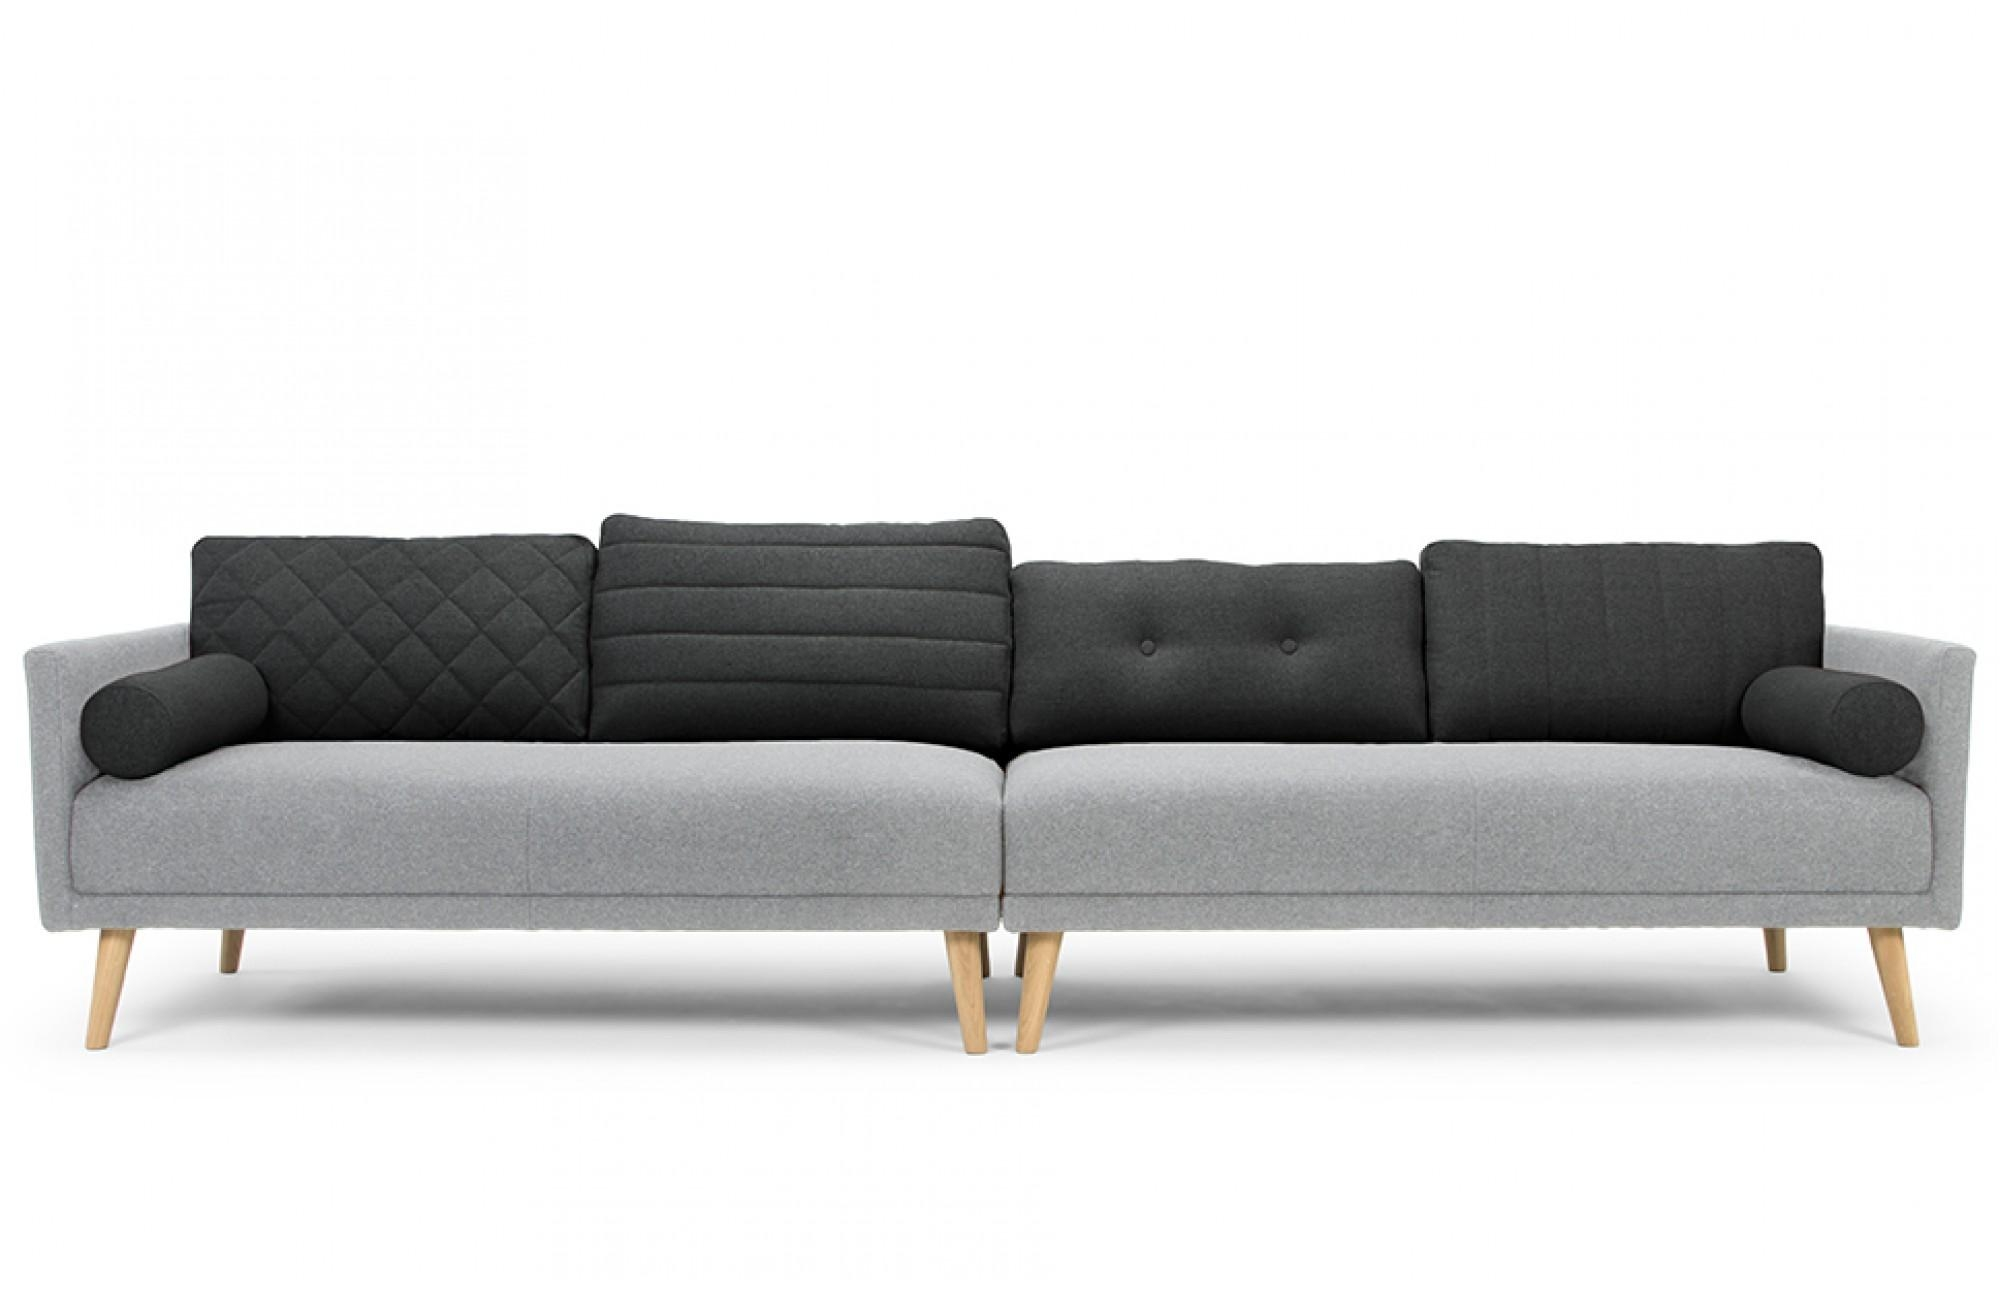 Dixie Mix 4 Seater Sofa Out And Out Original For Four Seater Sofas (Image 7 of 20)